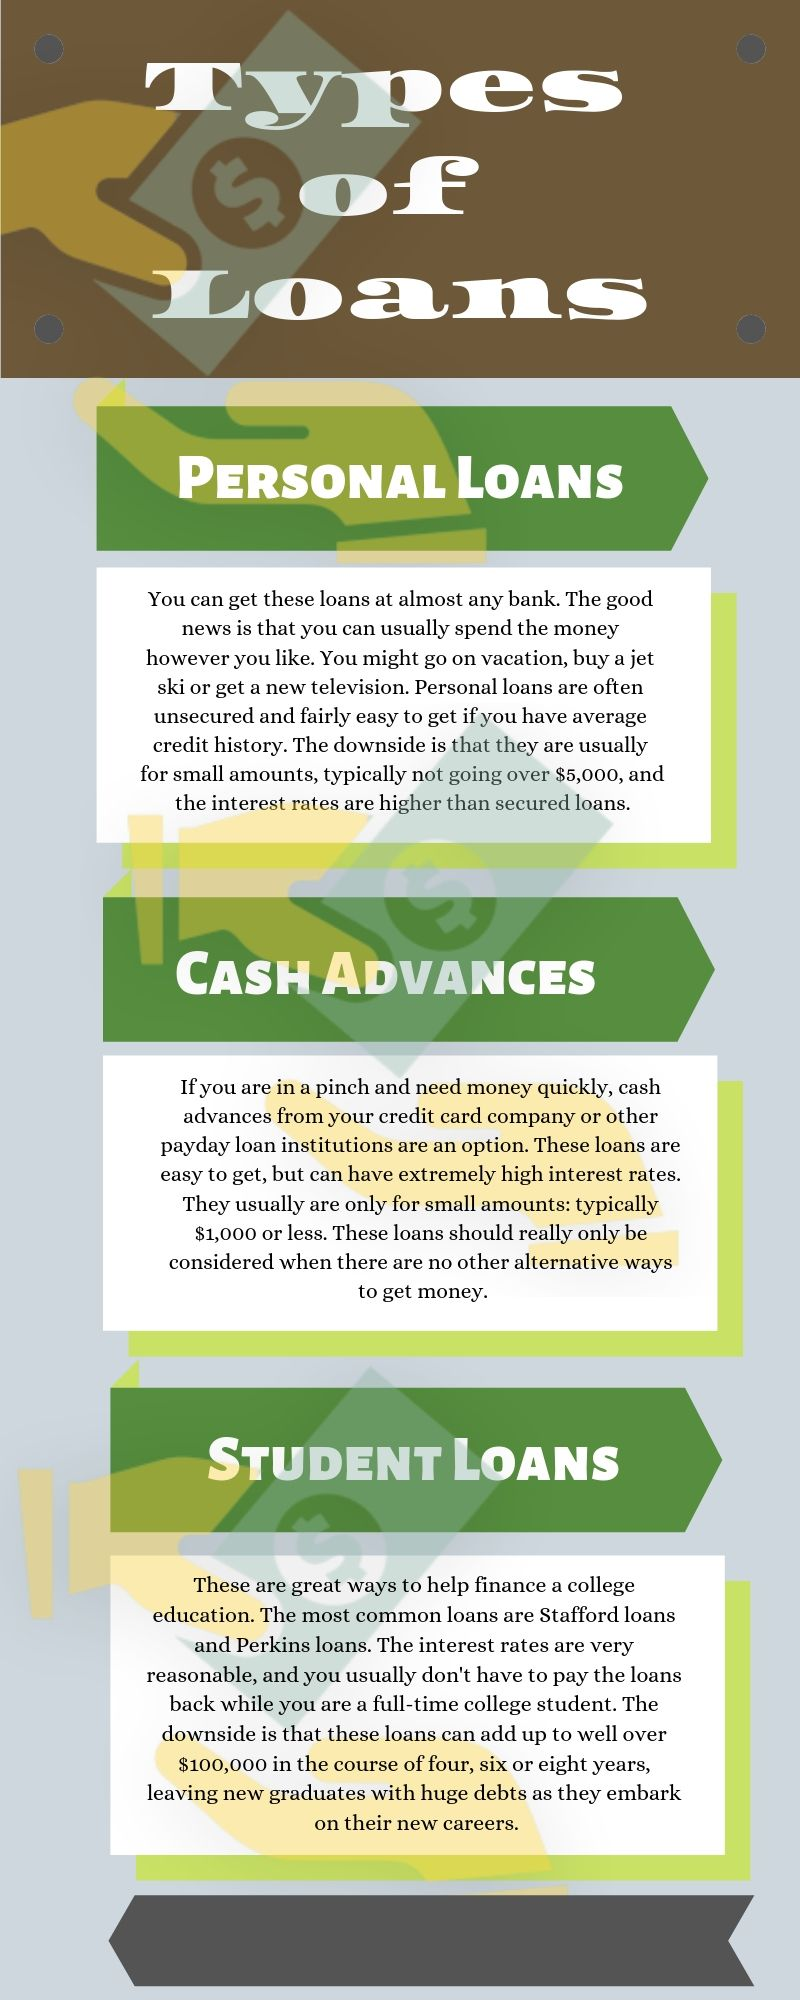 How To Apply For A Small Personal Loan Online In 2020 Personal Loans Personal Loans Online How To Apply